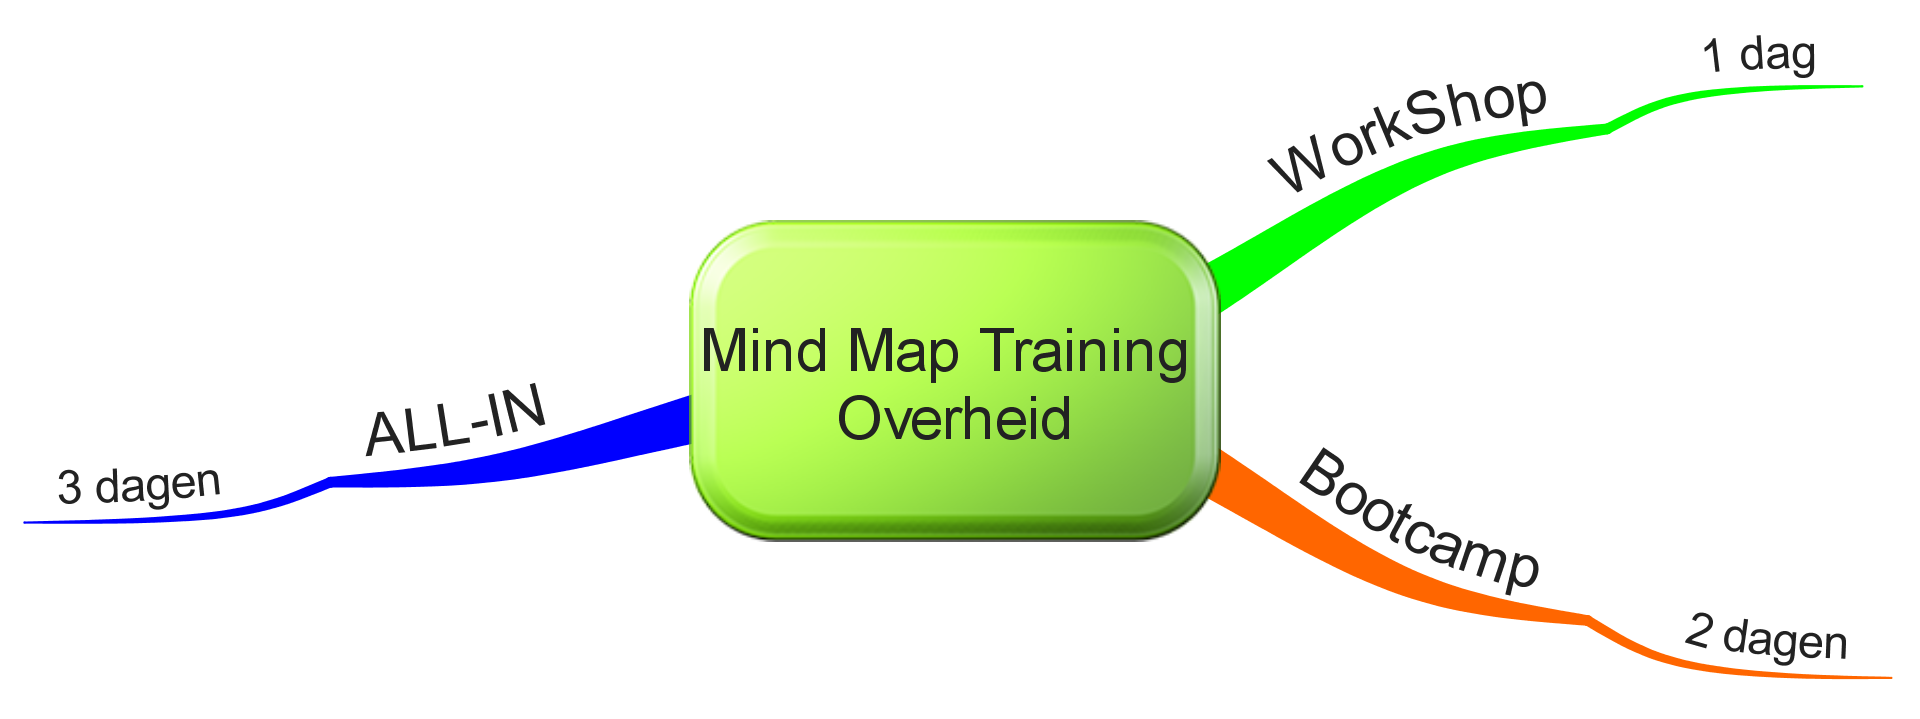 Mind Map Training Overheid